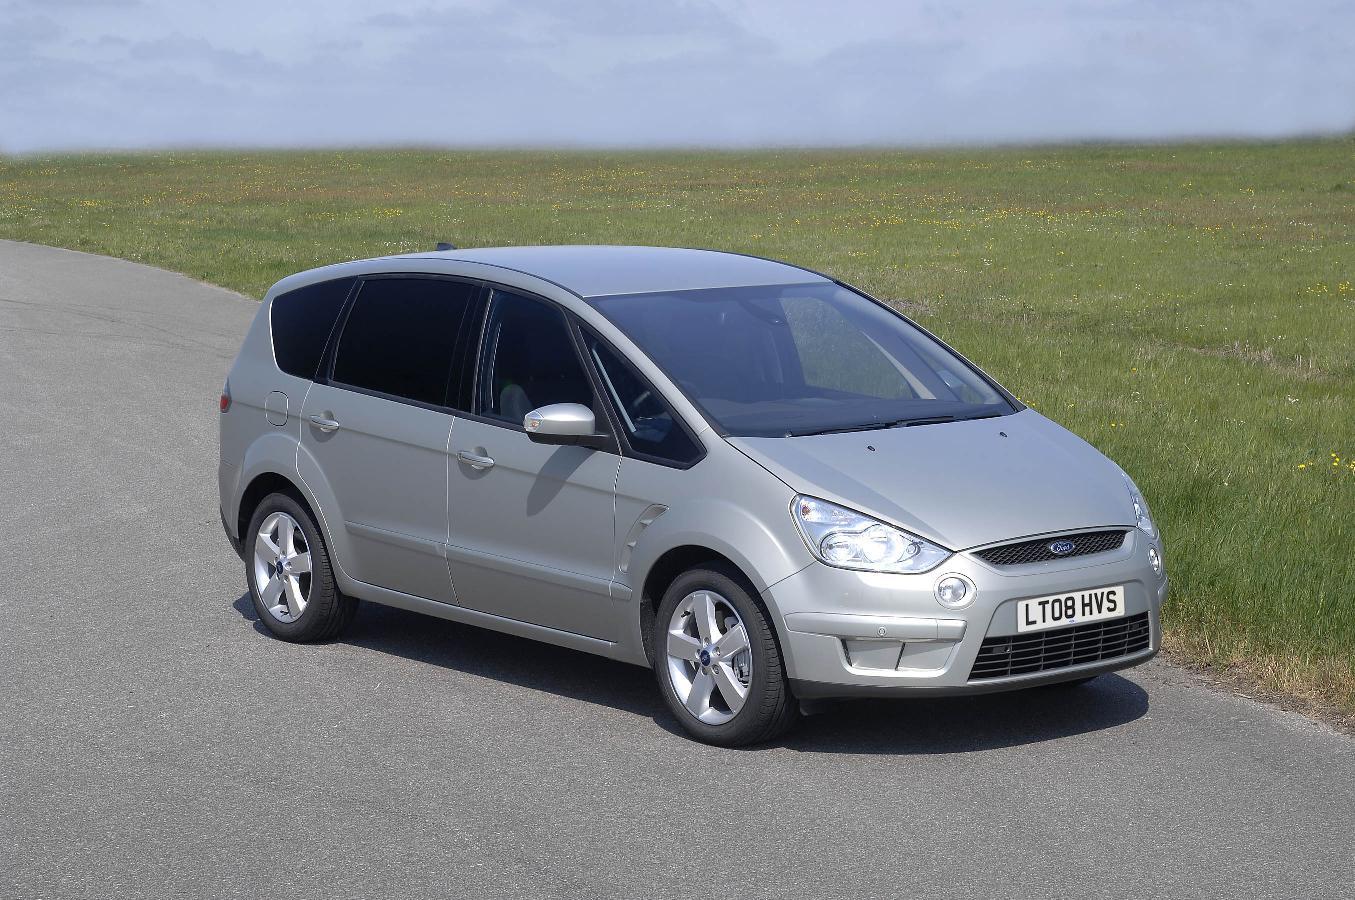 4. Ford S-Max Titanium TDCI at 20%